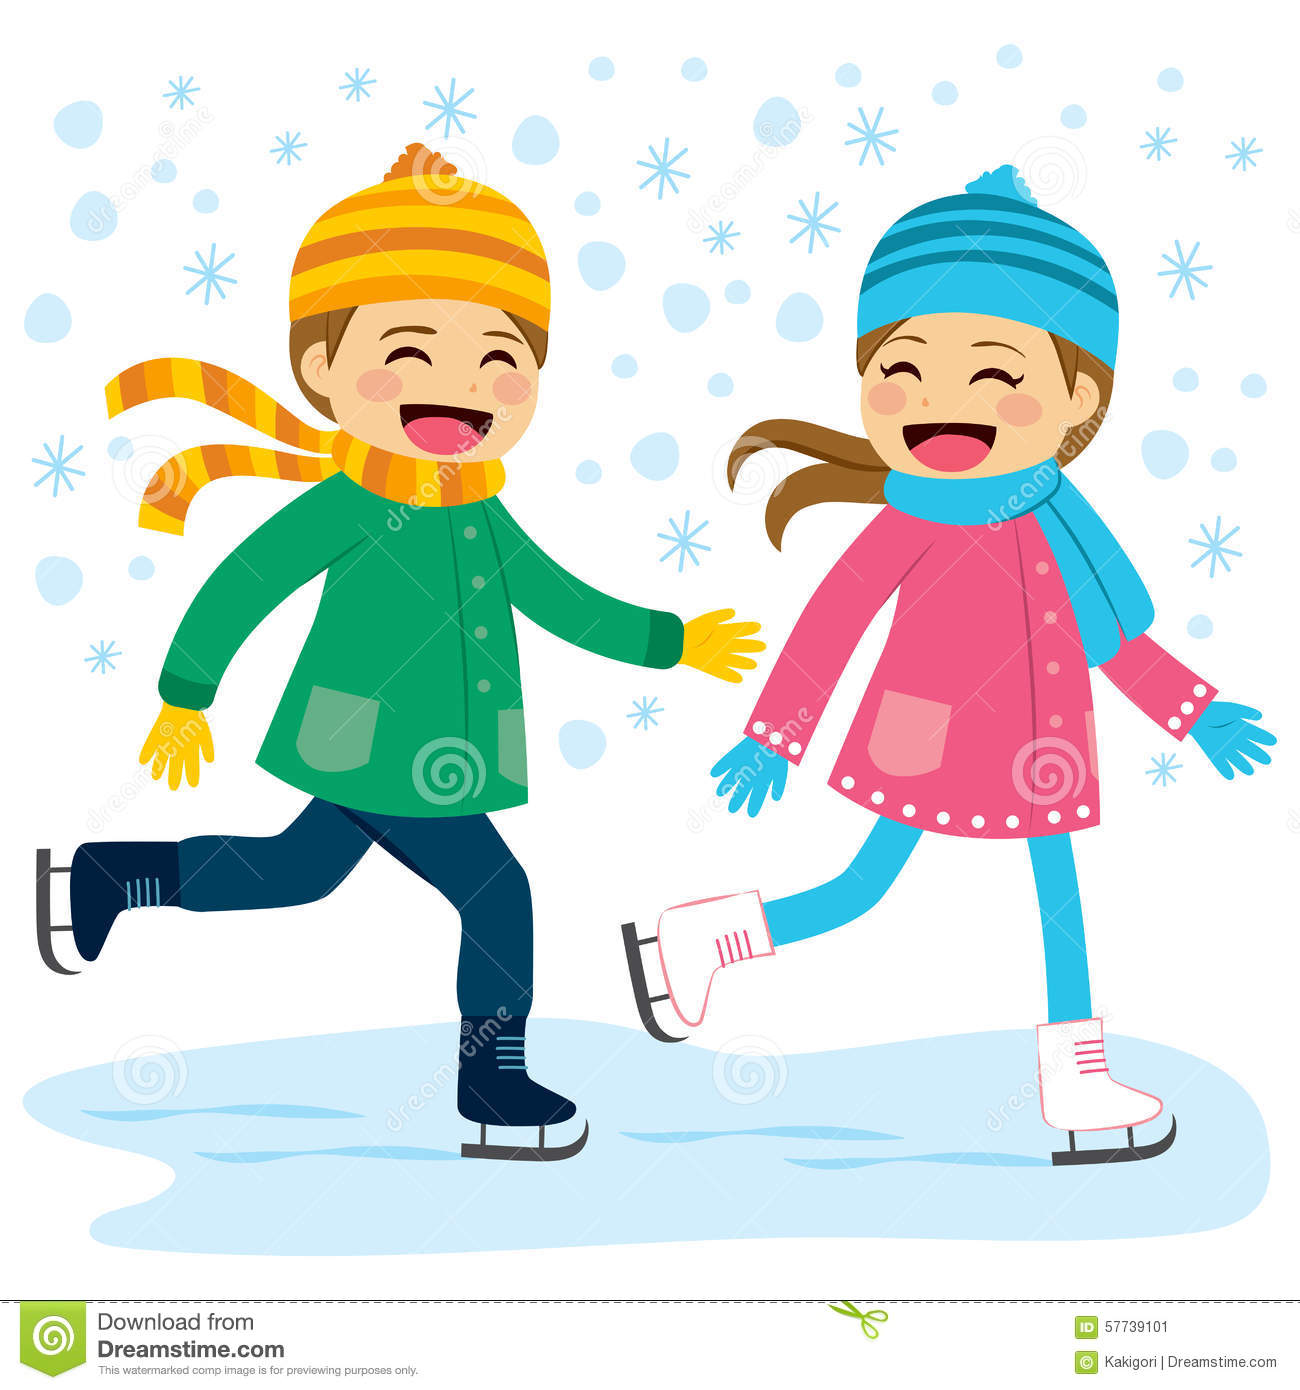 boy and girl ice skating stock vector illustration of figure skating clip art black and white figure skating clip art black and white